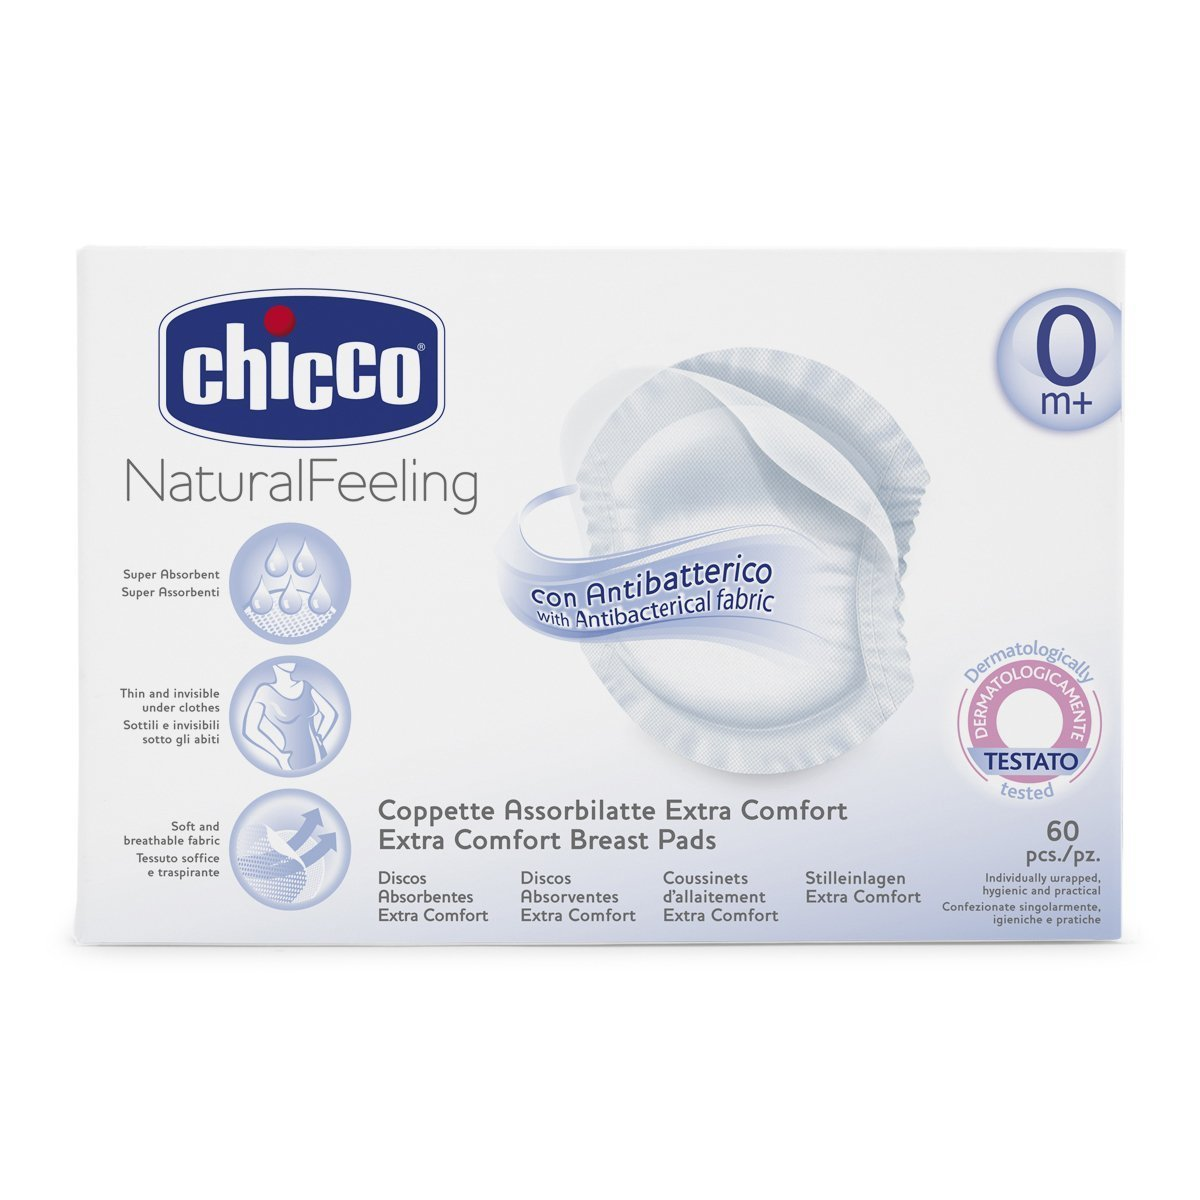 Chicco-breast-pads